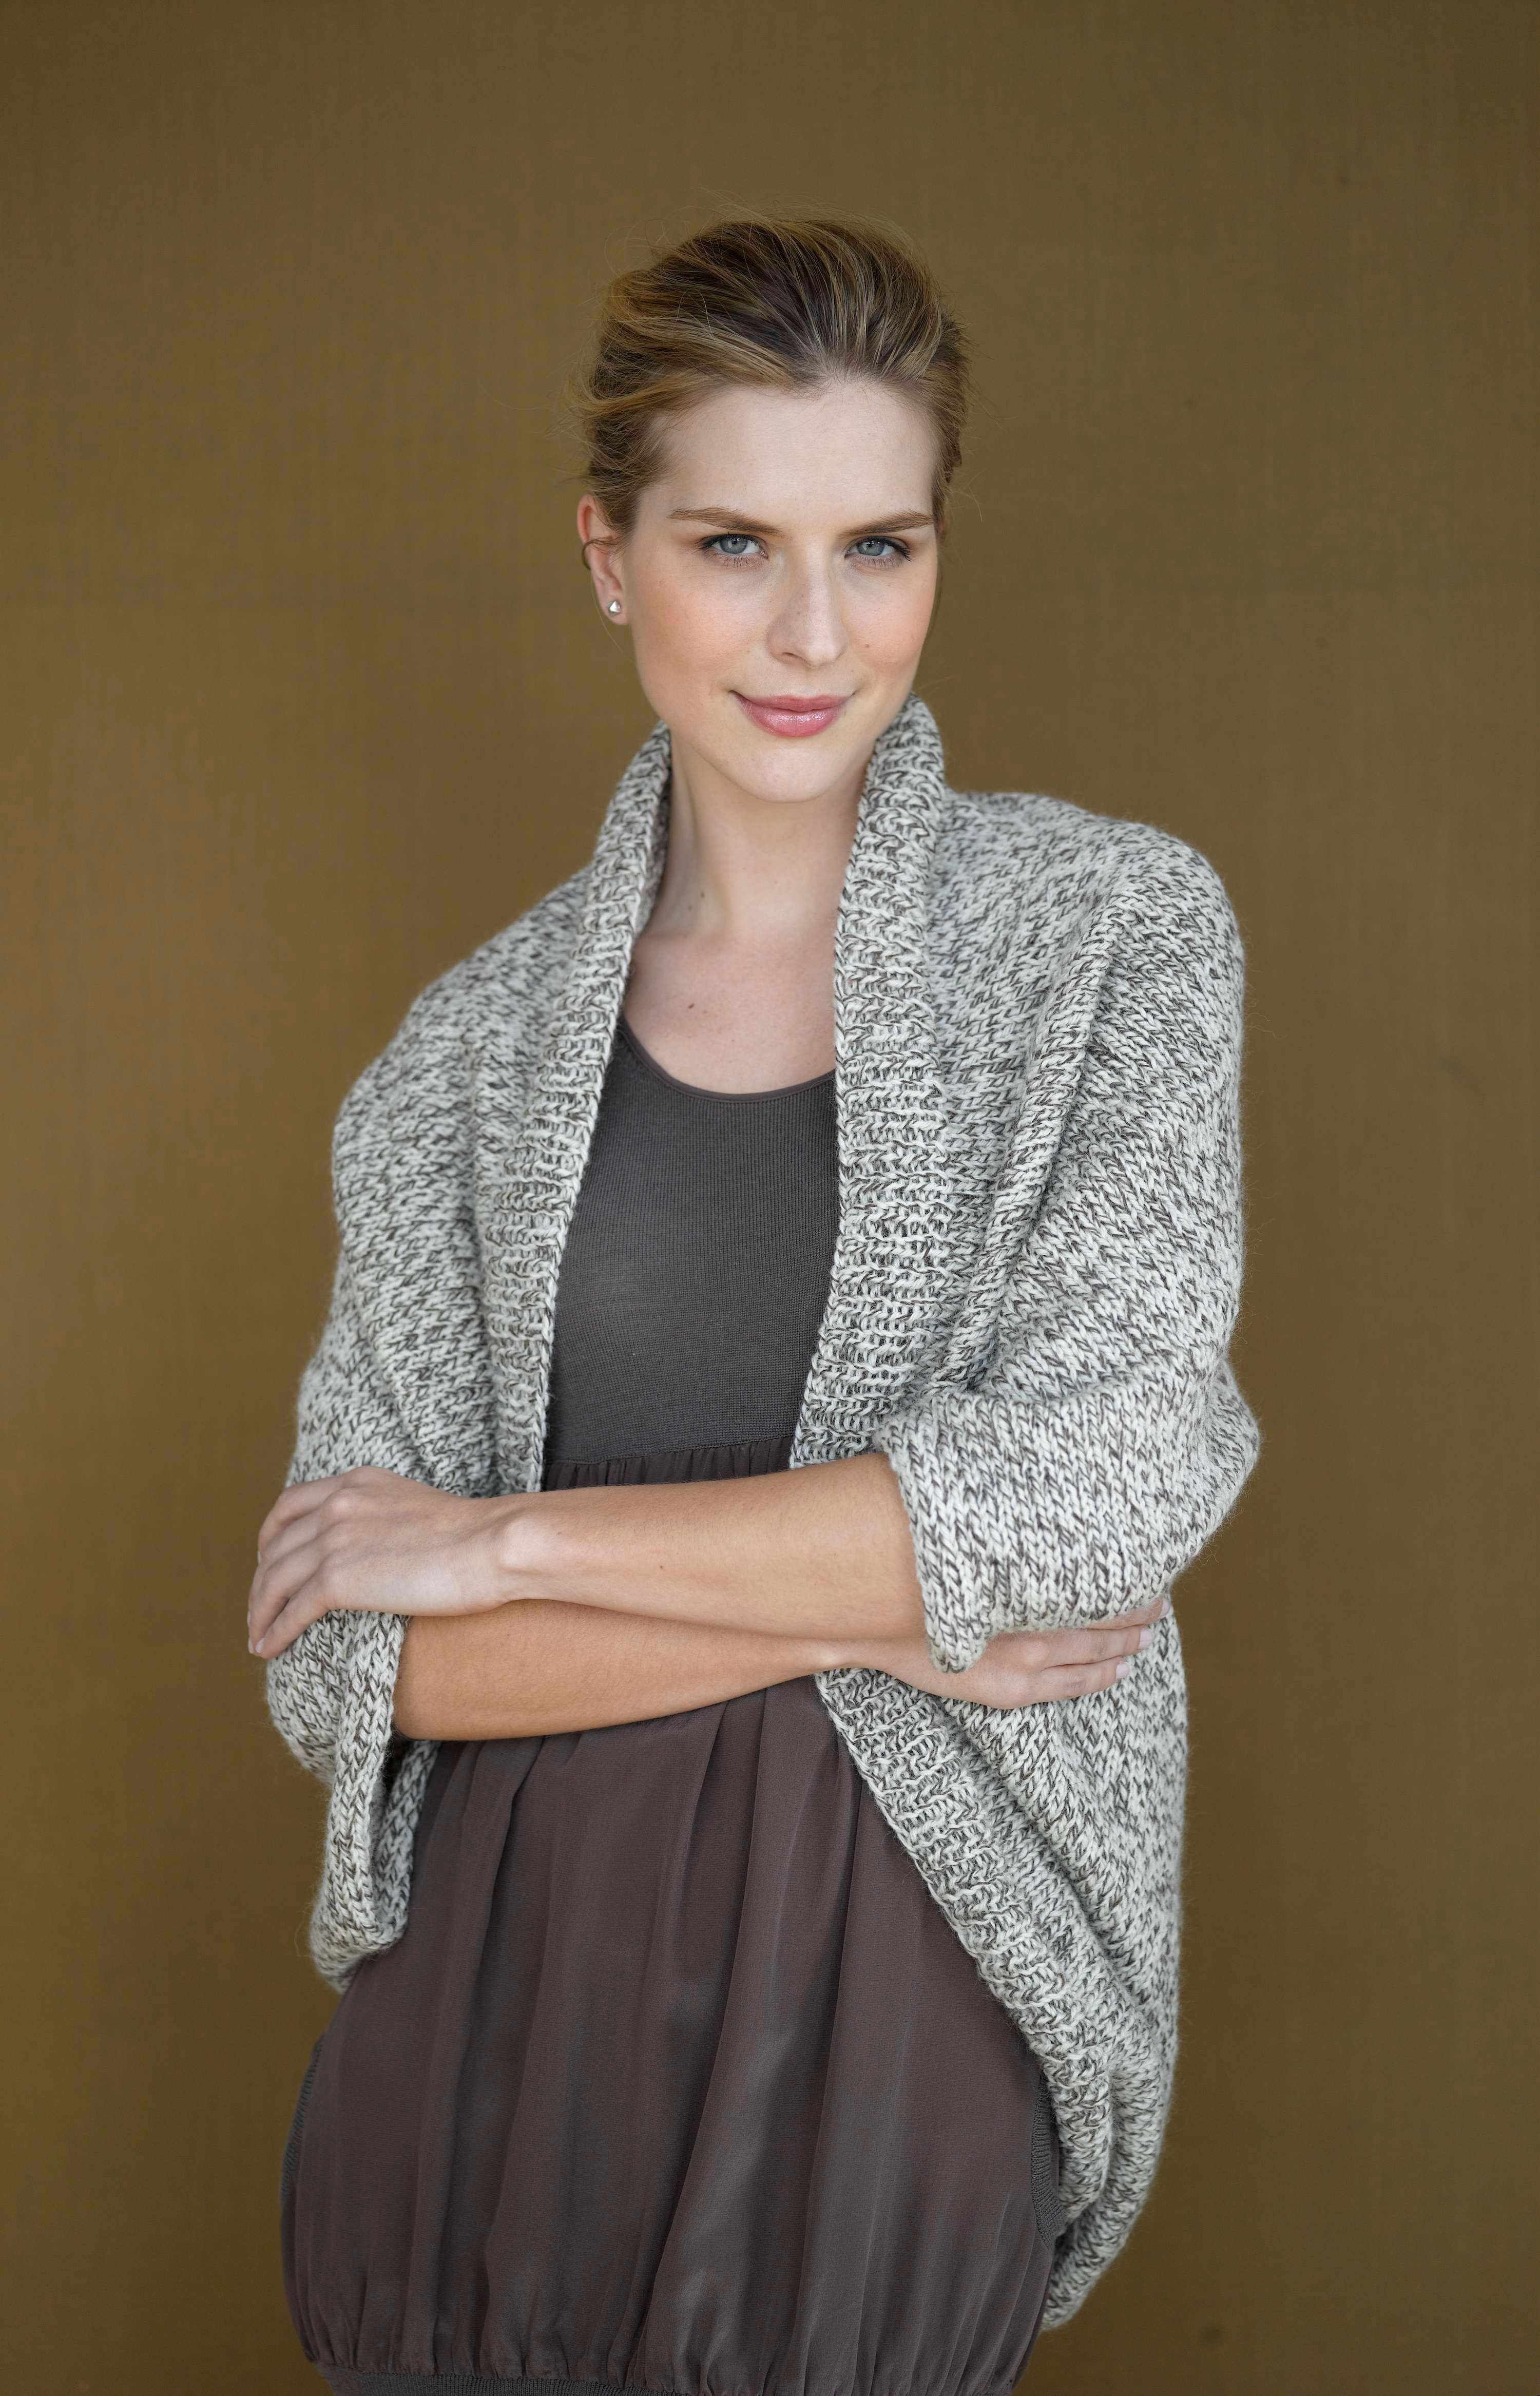 Speckled Shrug (Knit) Free Knitting Pattern from Lion Brand ...